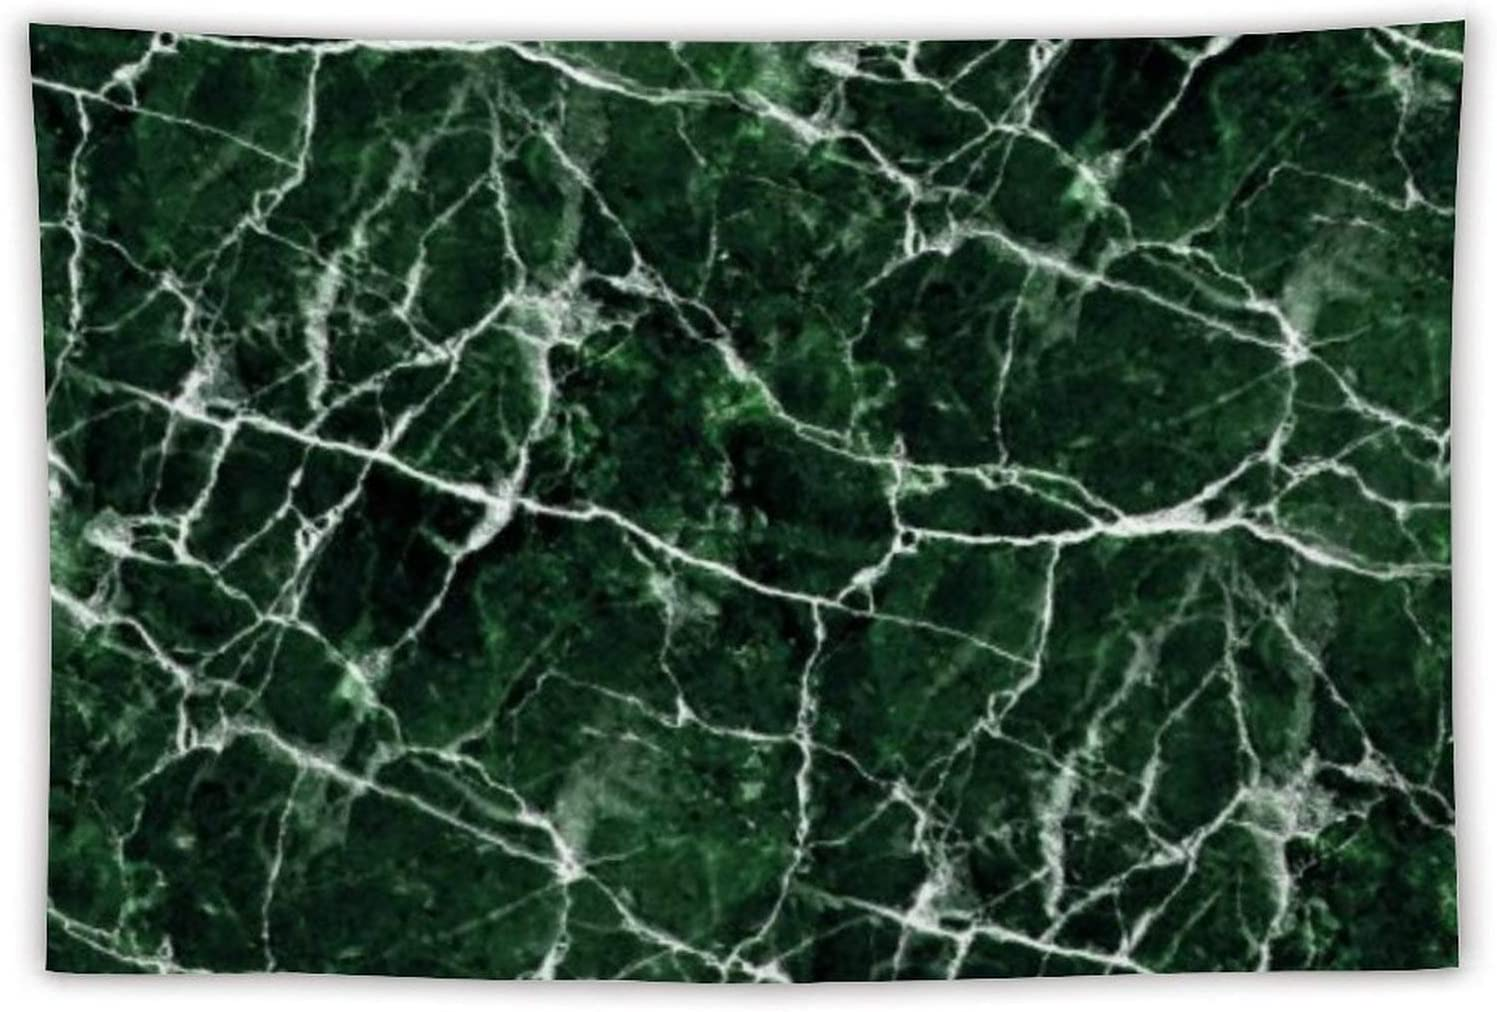 701 Tapestry Max 79% OFF Green Marble Wall Gifts Bedroom for Decor Dorm